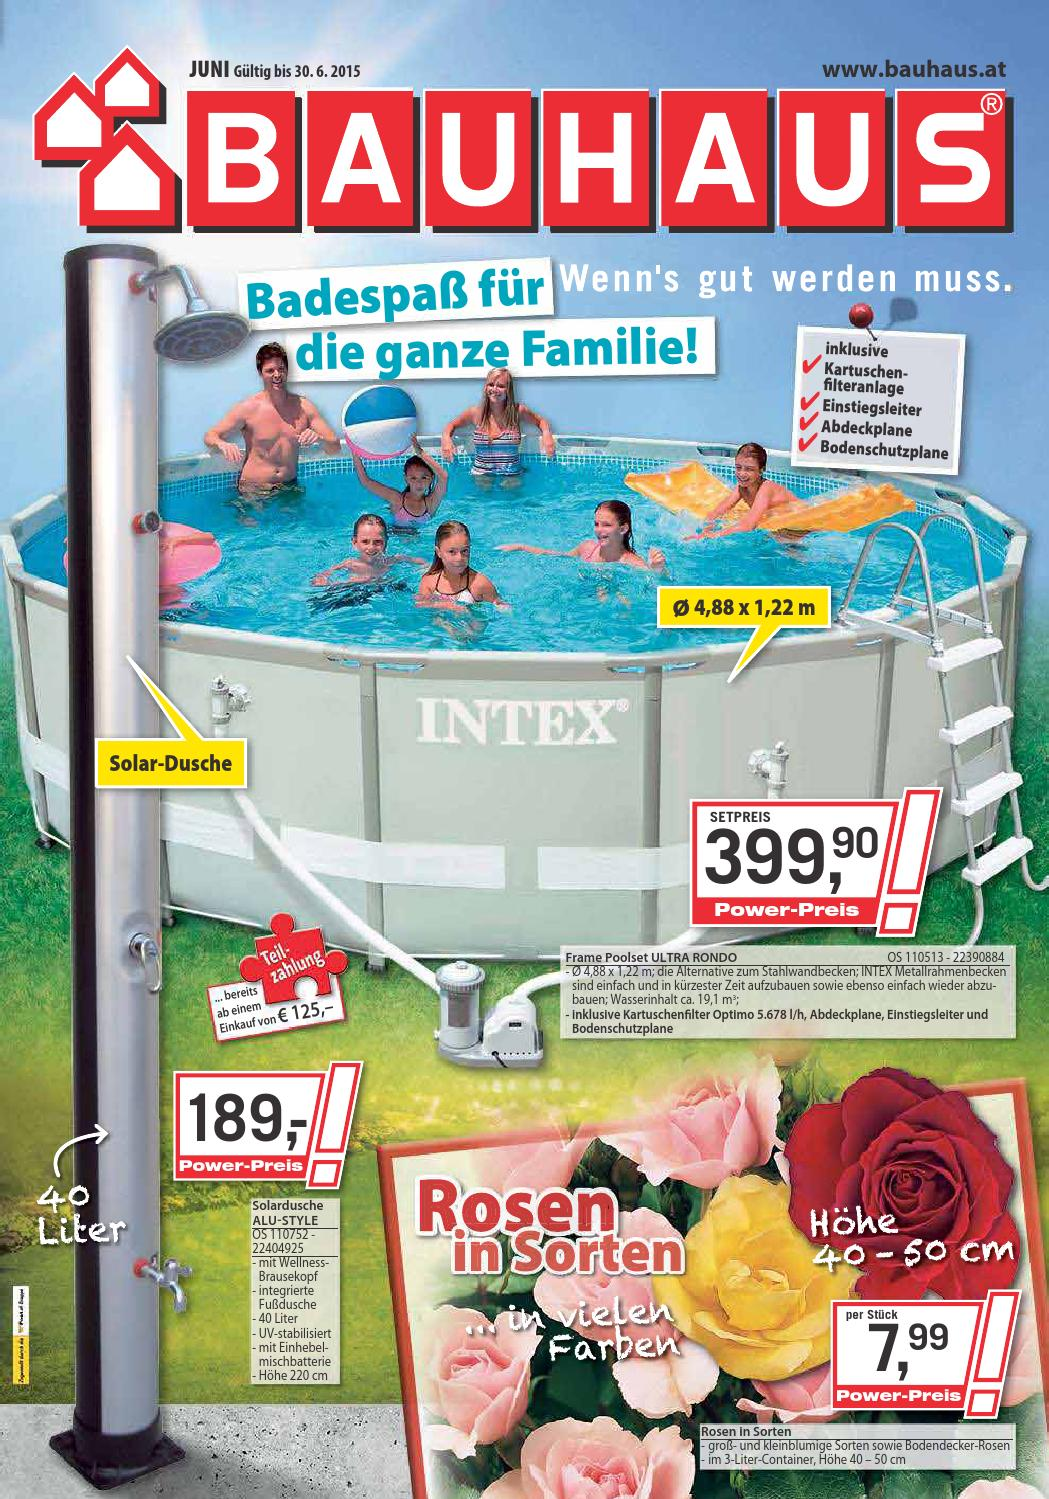 Bauhaus angebote 1 30juni2015 by issuu for Bauhaus poolset